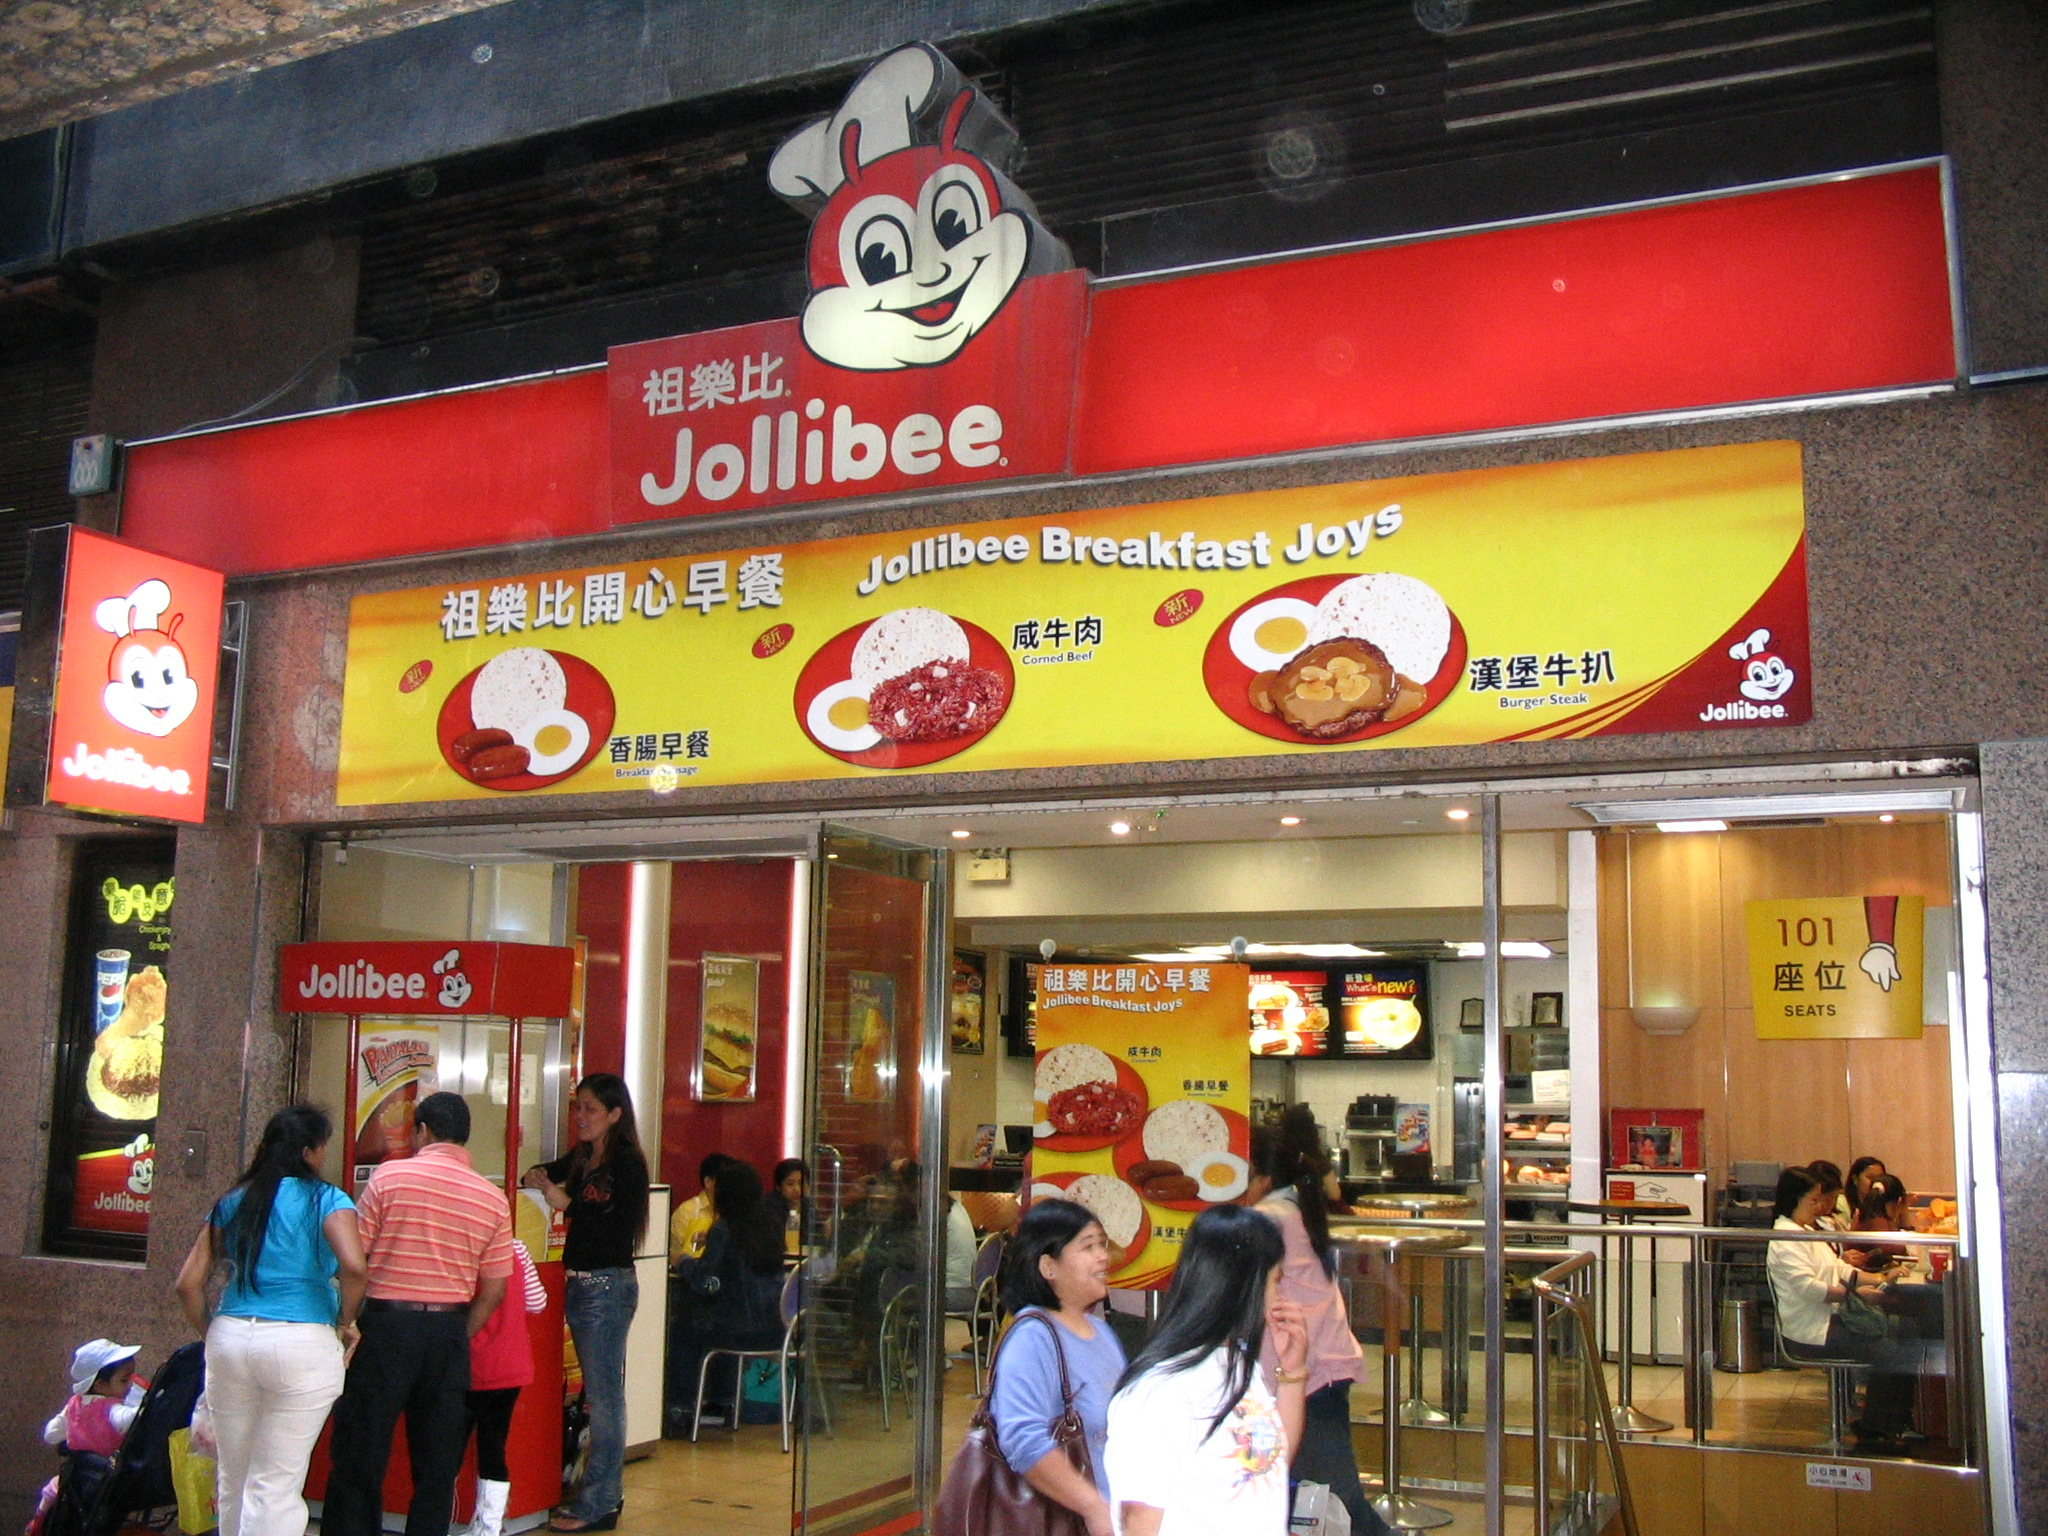 Phillipines Jollibee Completes Buyout Of Happy Bee In China